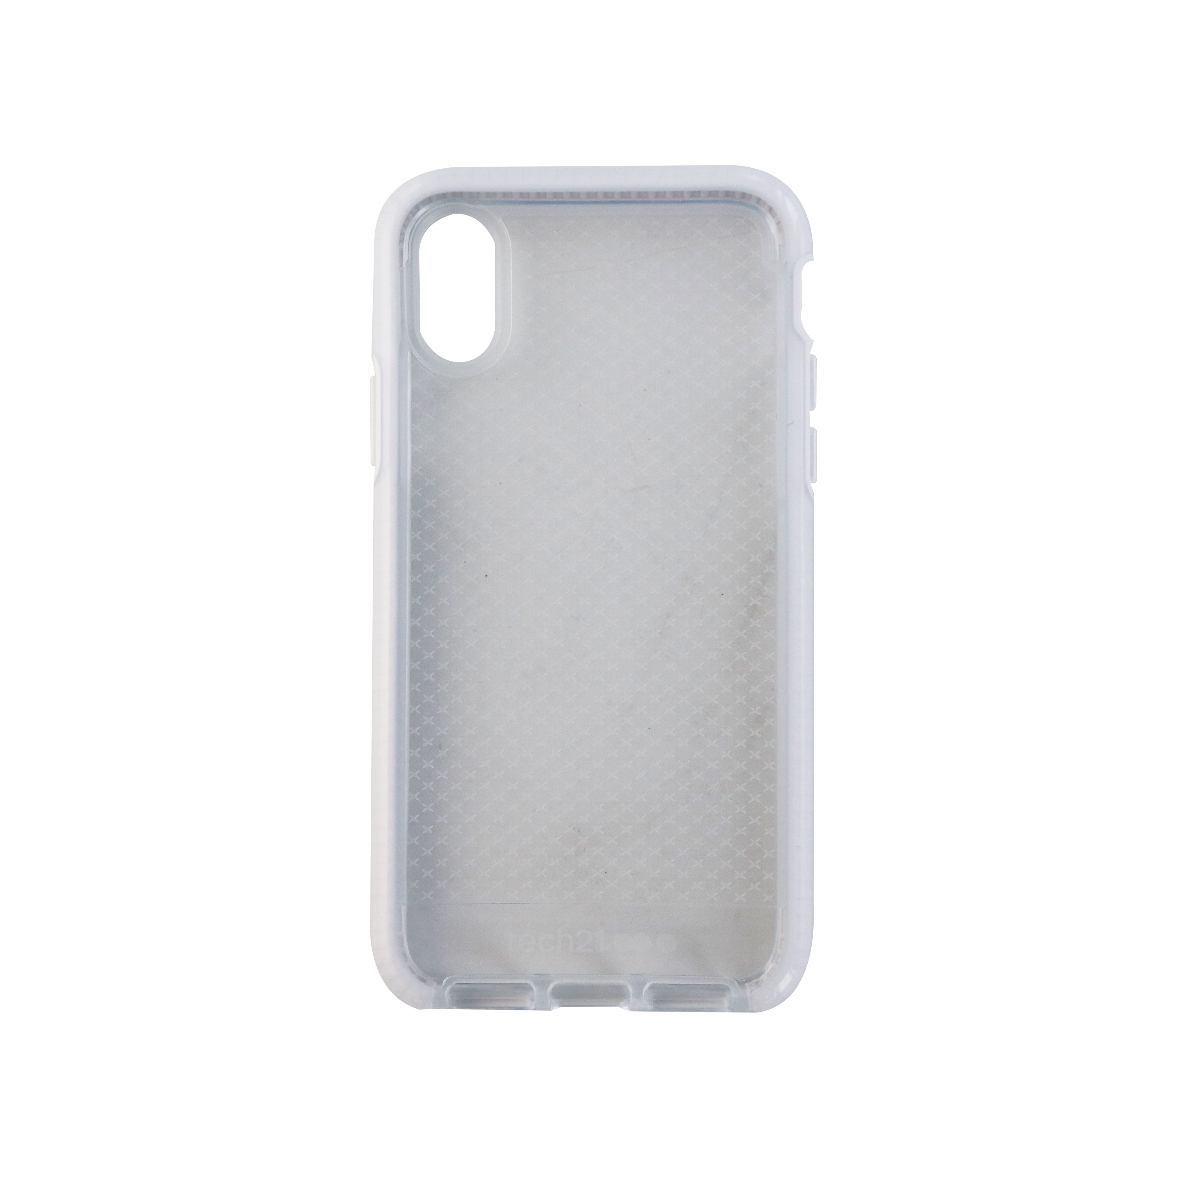 Tech21 Evo Check Protective Case Cover for iPhone X 10 - Clear/White